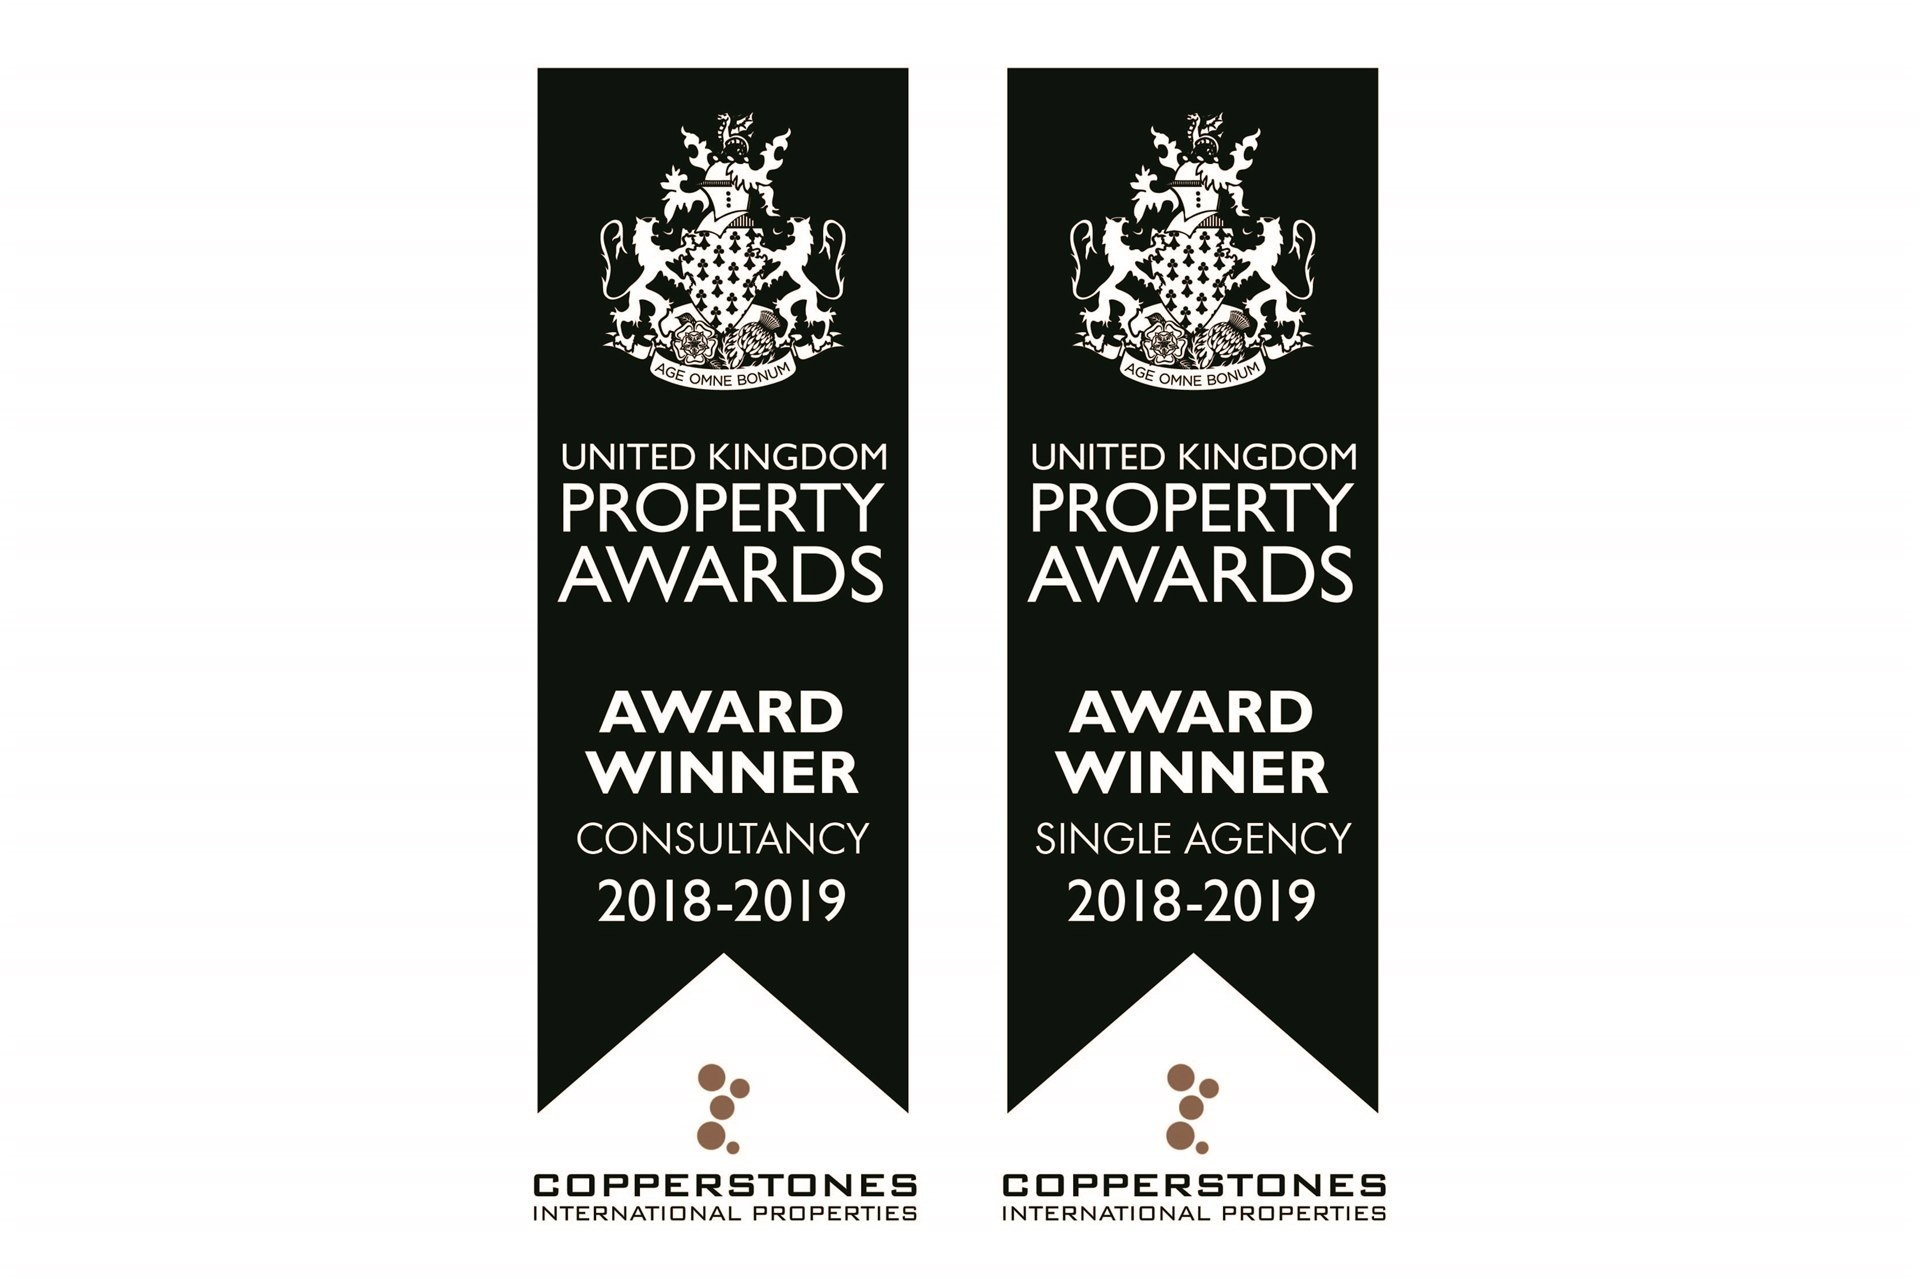 Copperstones wins two international property awards